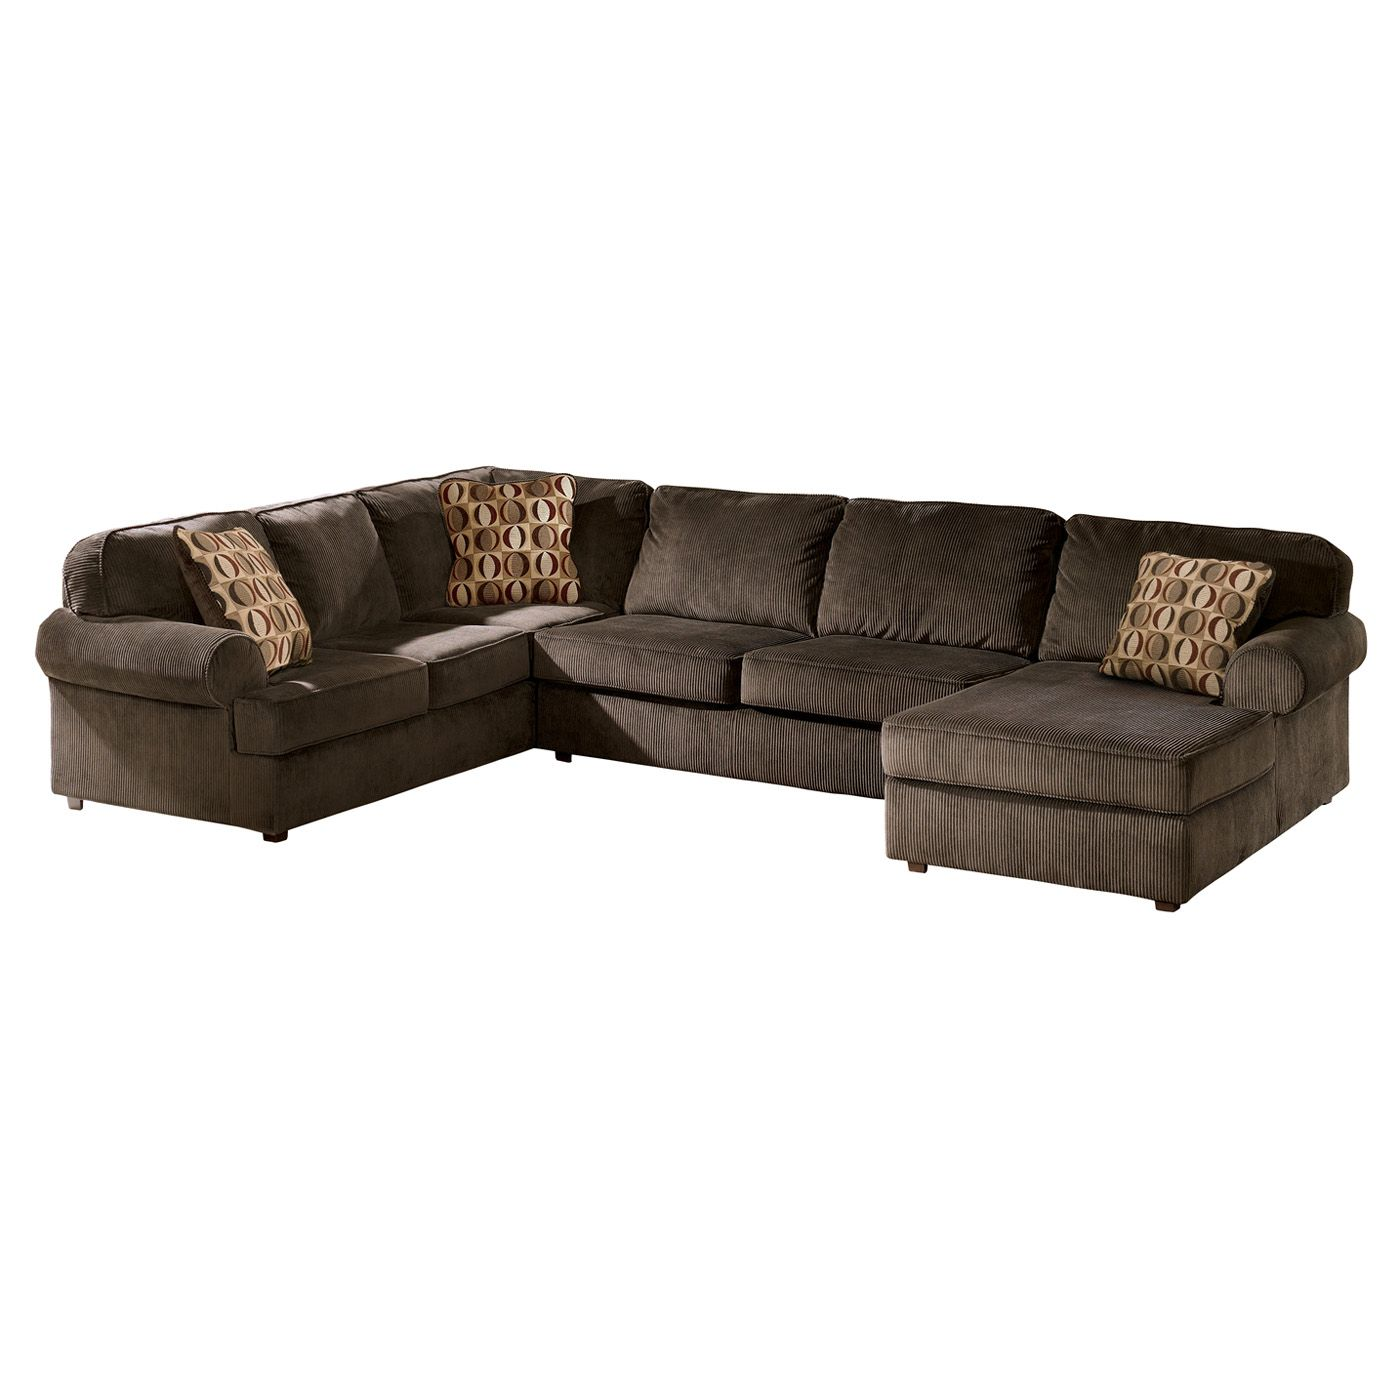 Shop Signature Design By Ashley Vista Sectional At Atg Stores Browse Our Sectional Sofas Al Ashley Furniture Furniture Mall Of Kansas Most Comfortable Couch